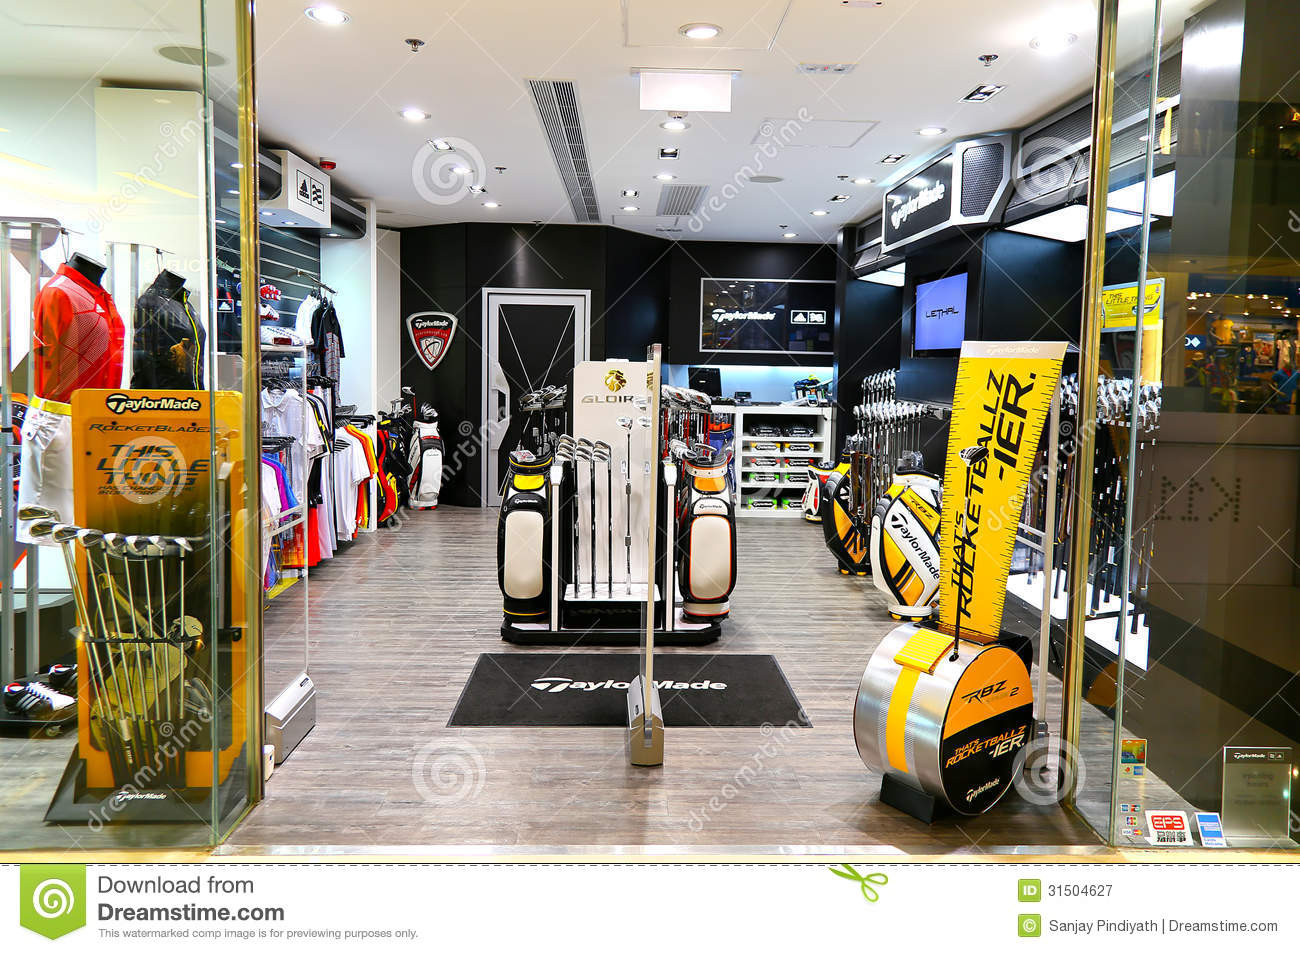 TaylorMade Golf Factory Store store or outlet store located in Augustine, Florida - St. Augustine Premium Outlets location, address: State Road 16, St. Augustine, Florida - FL Find information about hours, locations, online information and users ratings and reviews.3/5(1).